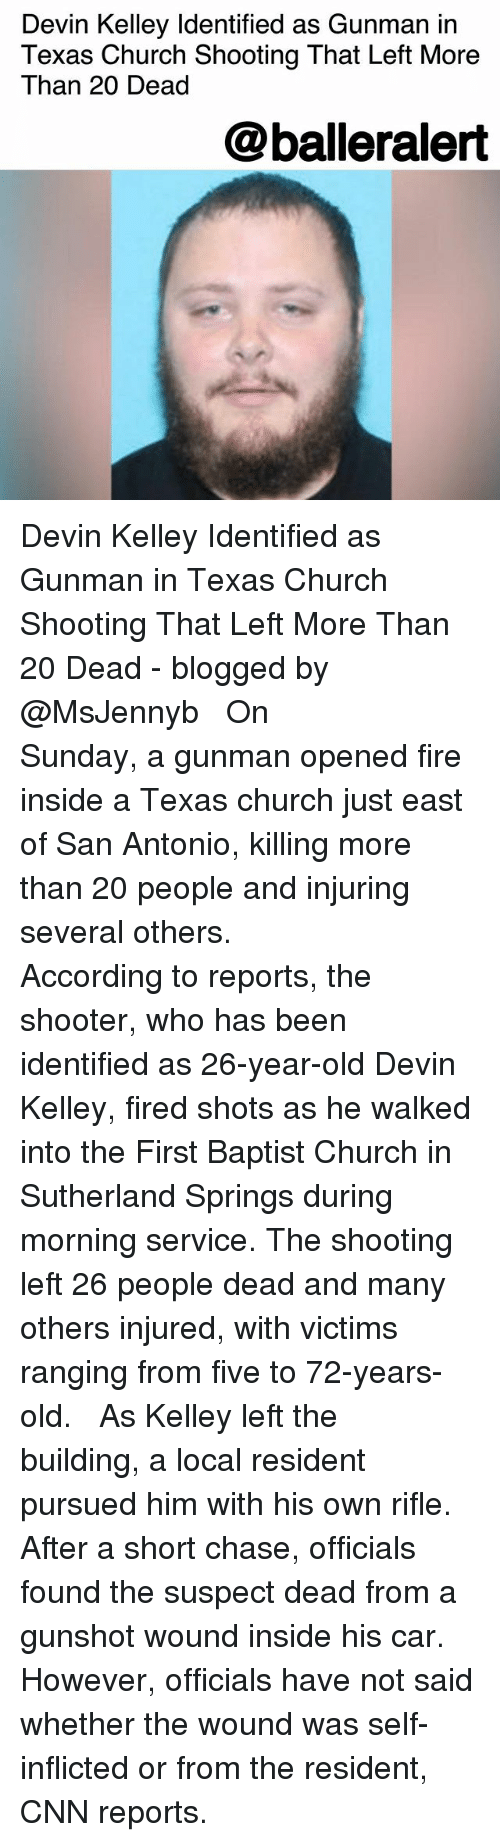 Church, cnn.com, and Fire: Devin Kelley Identified as Gunman in  Texas Church Shooting That Left More  Than 20 Dead  @balleralert Devin Kelley Identified as Gunman in Texas Church Shooting That Left More Than 20 Dead - blogged by @MsJennyb ⠀⠀⠀⠀⠀⠀⠀ ⠀⠀⠀⠀⠀⠀⠀ On Sunday, a gunman opened fire inside a Texas church just east of San Antonio, killing more than 20 people and injuring several others. ⠀⠀⠀⠀⠀⠀⠀ ⠀⠀⠀⠀⠀⠀⠀ According to reports, the shooter, who has been identified as 26-year-old Devin Kelley, fired shots as he walked into the First Baptist Church in Sutherland Springs during morning service. The shooting left 26 people dead and many others injured, with victims ranging from five to 72-years-old. ⠀⠀⠀⠀⠀⠀⠀ ⠀⠀⠀⠀⠀⠀⠀ As Kelley left the building, a local resident pursued him with his own rifle. After a short chase, officials found the suspect dead from a gunshot wound inside his car. However, officials have not said whether the wound was self-inflicted or from the resident, CNN reports.